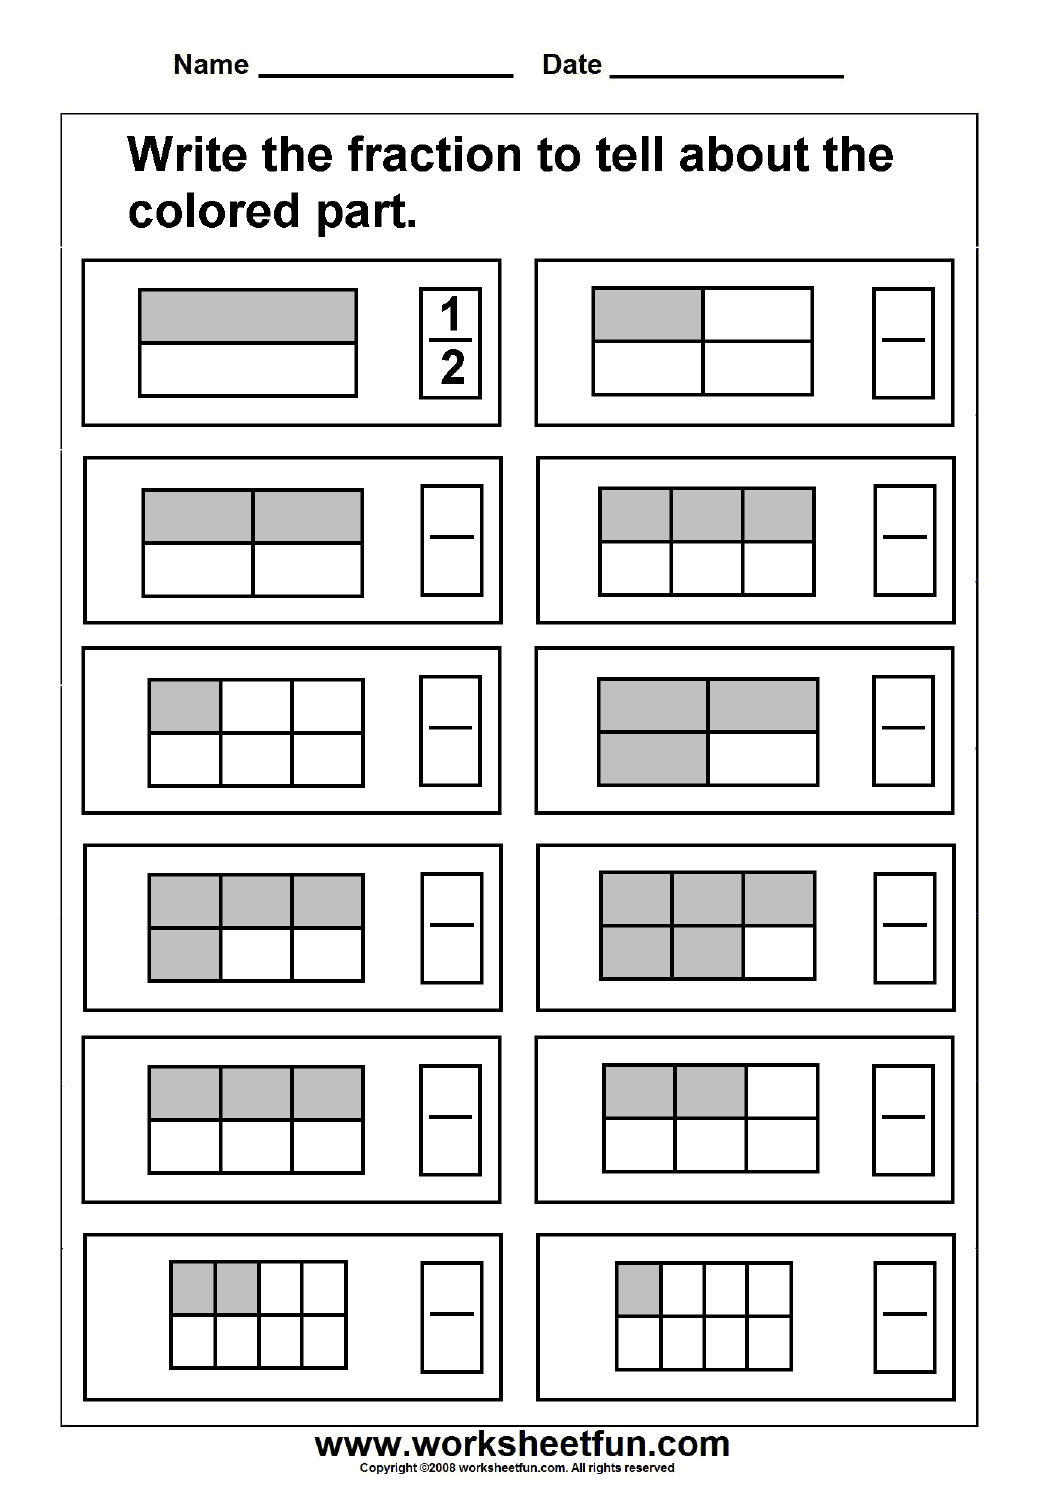 Fraction FREE Printable Worksheets Worksheetfun – Shaded Fractions Worksheet